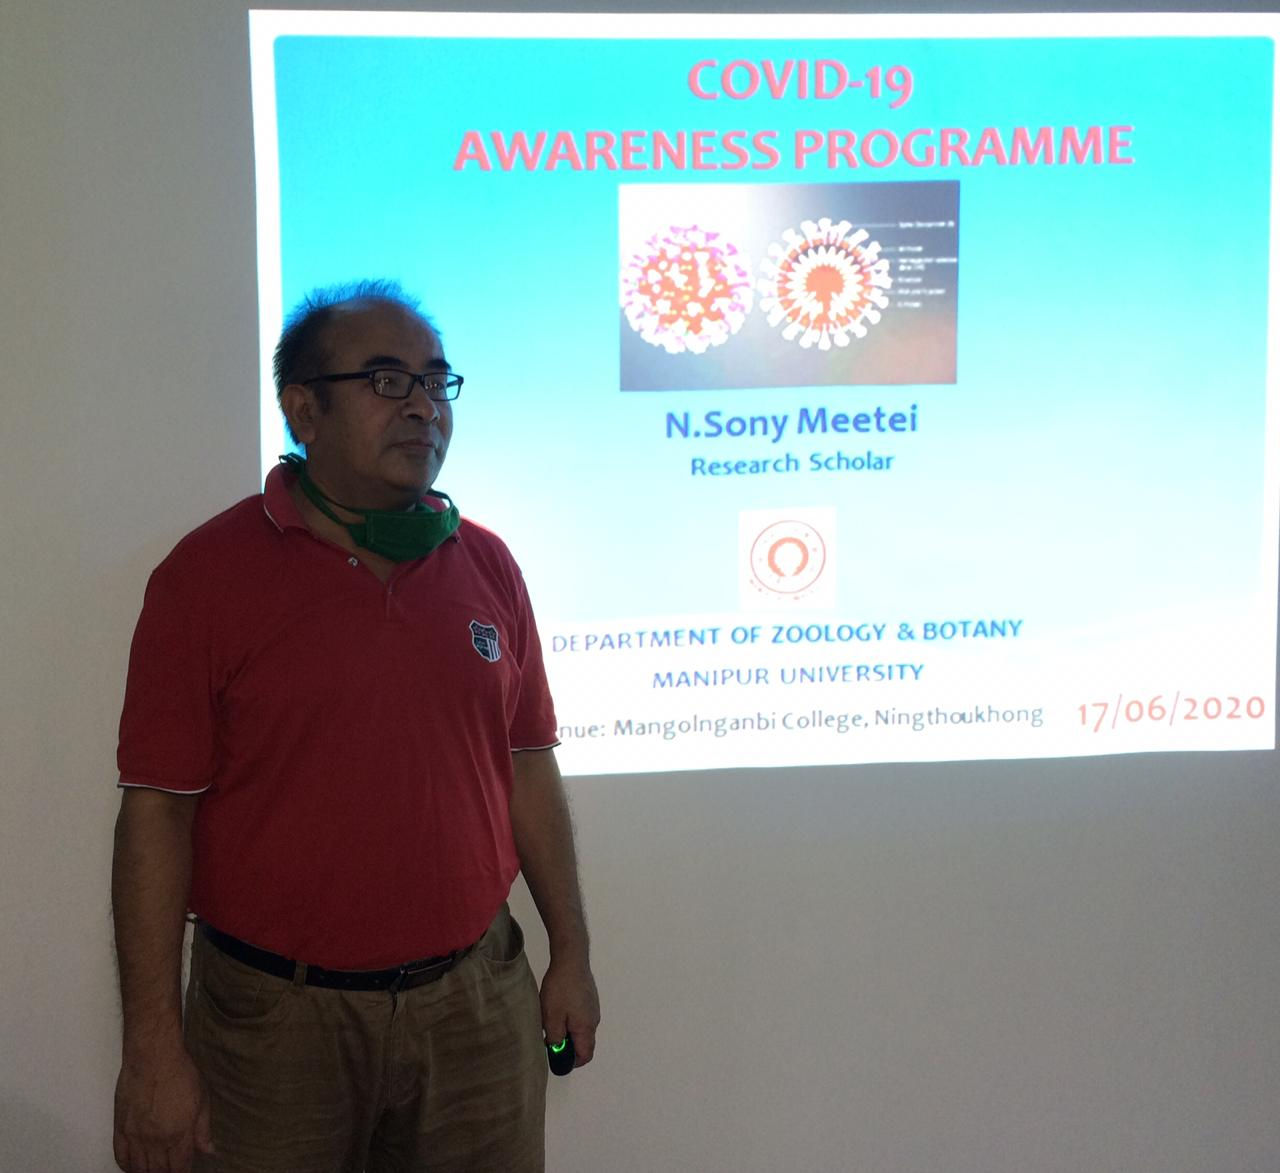 N. Sony Meetei delivered a lecture on COVID19 at Mangolnganbi College.